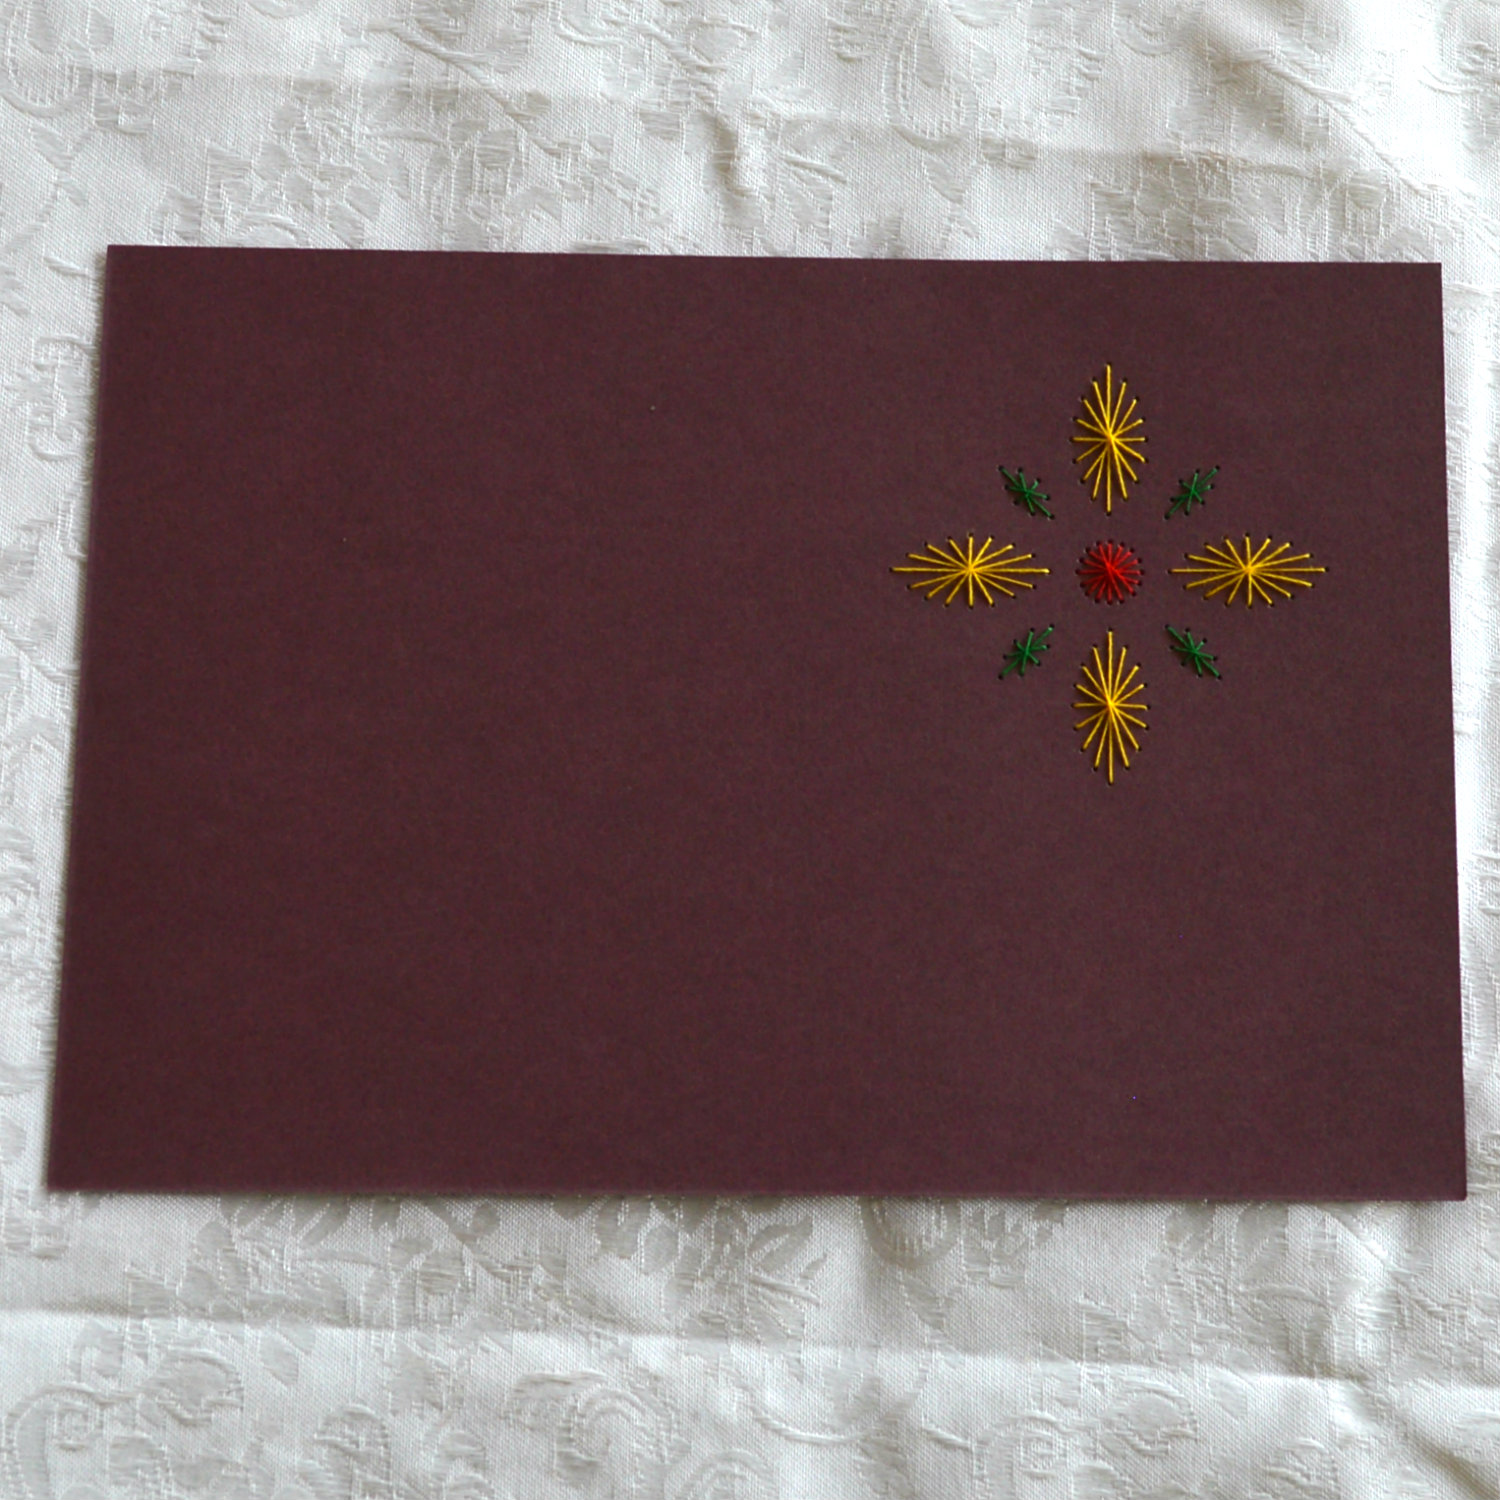 As this is Standard Greeting Card Blank size, you can just secure additional paper inside to hide your stitching.